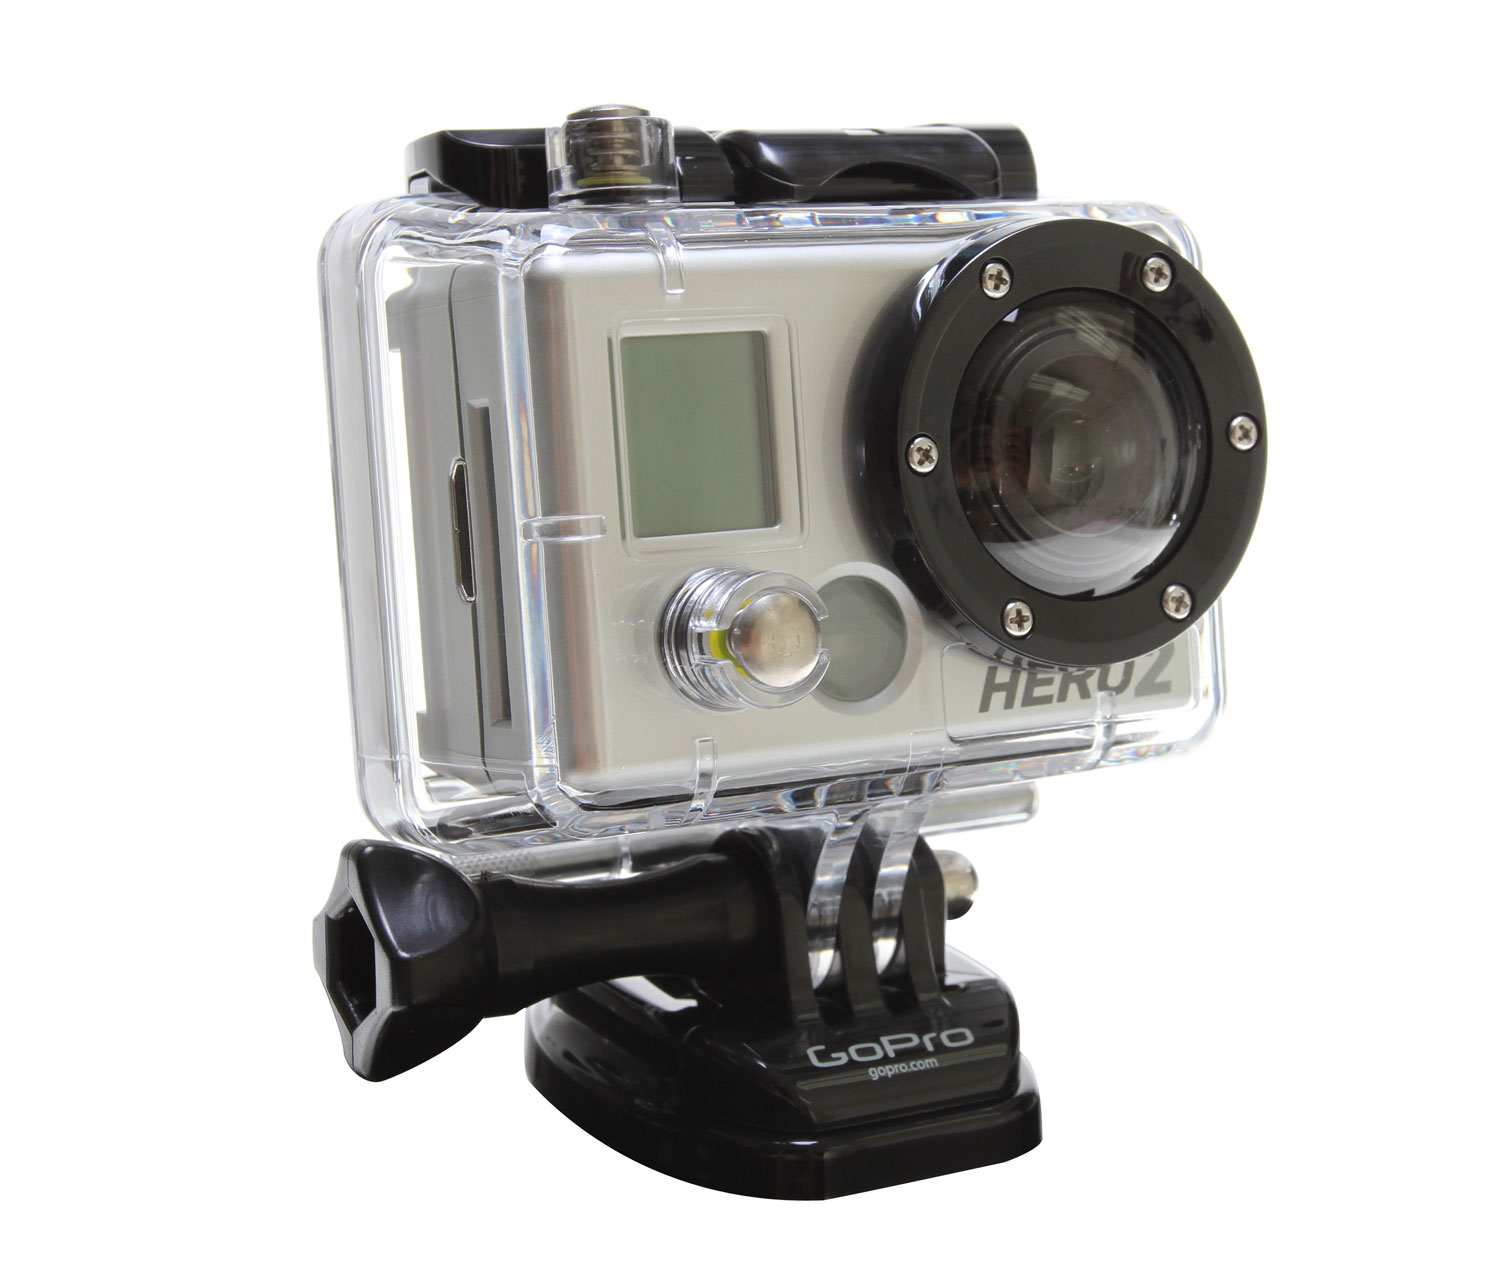 Surf GoPro's HD Surf HERO is the world's only 1080p HD on-board video and still photo surfing camera. Professional quality 1080p / 960p / 720p HD resolutions record at 30 and 60 frames per second (60 fps in 720p). Easily mounts to any surfboard in seconds. So lightweight, even top pros claim they don't notice the camera on their boards.Key Features of the Go Pro HD Hero2 Surf Edition Camera: 1 HD HERO Camera (5 megapixel) 1 Rechargeable 1100 mAh Lithium-Ion Battery 1 Waterproof Quick-Release Housing (197'/60 m) 1 3M™ Adhesive Mounting Base 1 FCS™ Plug-Compatible Mount 1 Quick-Release Buckle 1 Leash 1 USB Cable 1 Component Video (HDTV) Cable 1 Composite Video + Audio Out Cable Warranty: One Year - $299.99